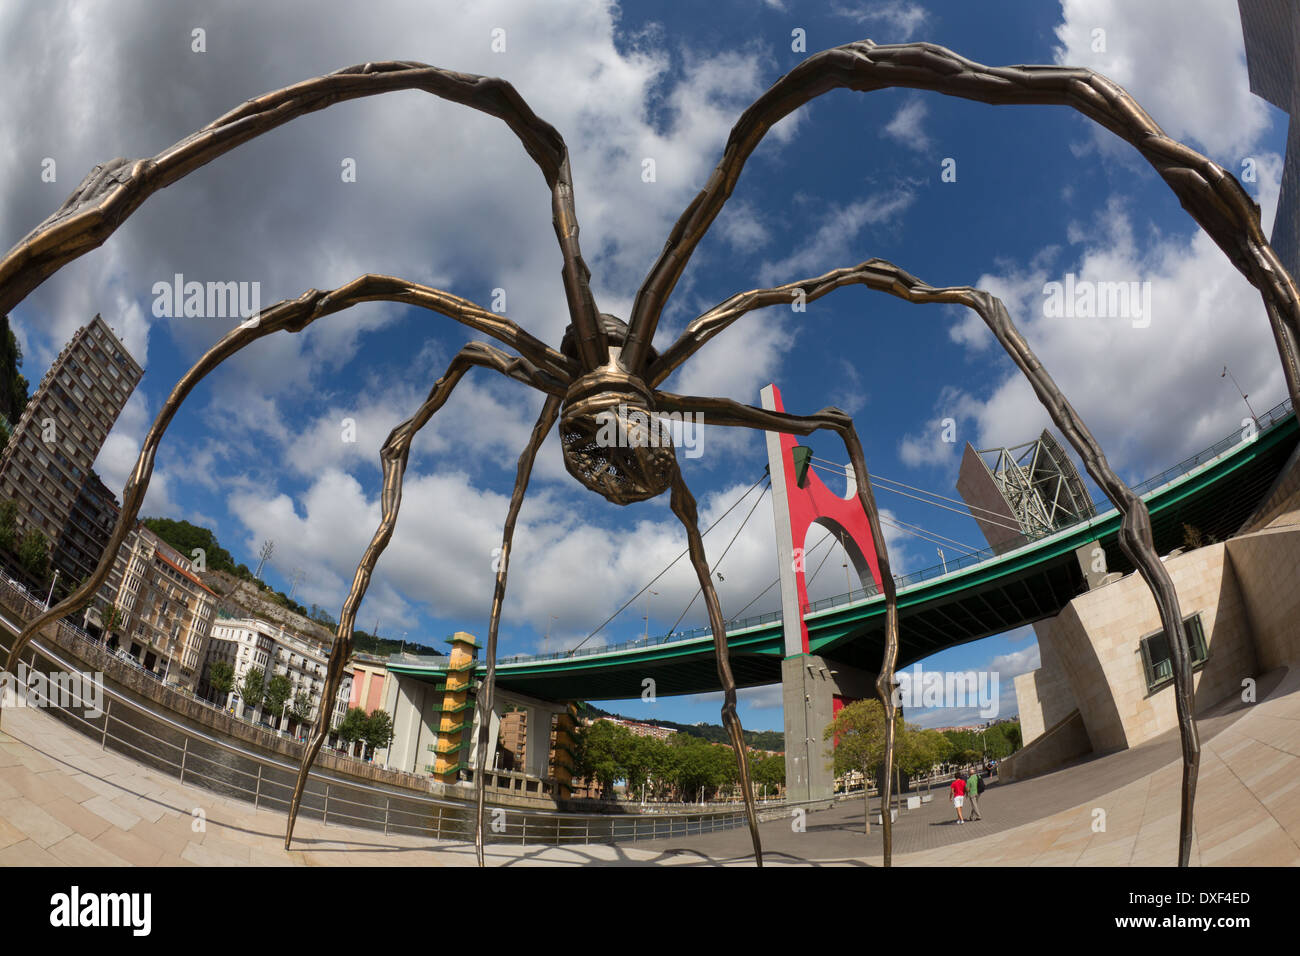 Spider and the Puente de la Salve in Bilbao in the province of Biscay in northern Spain - Stock Image